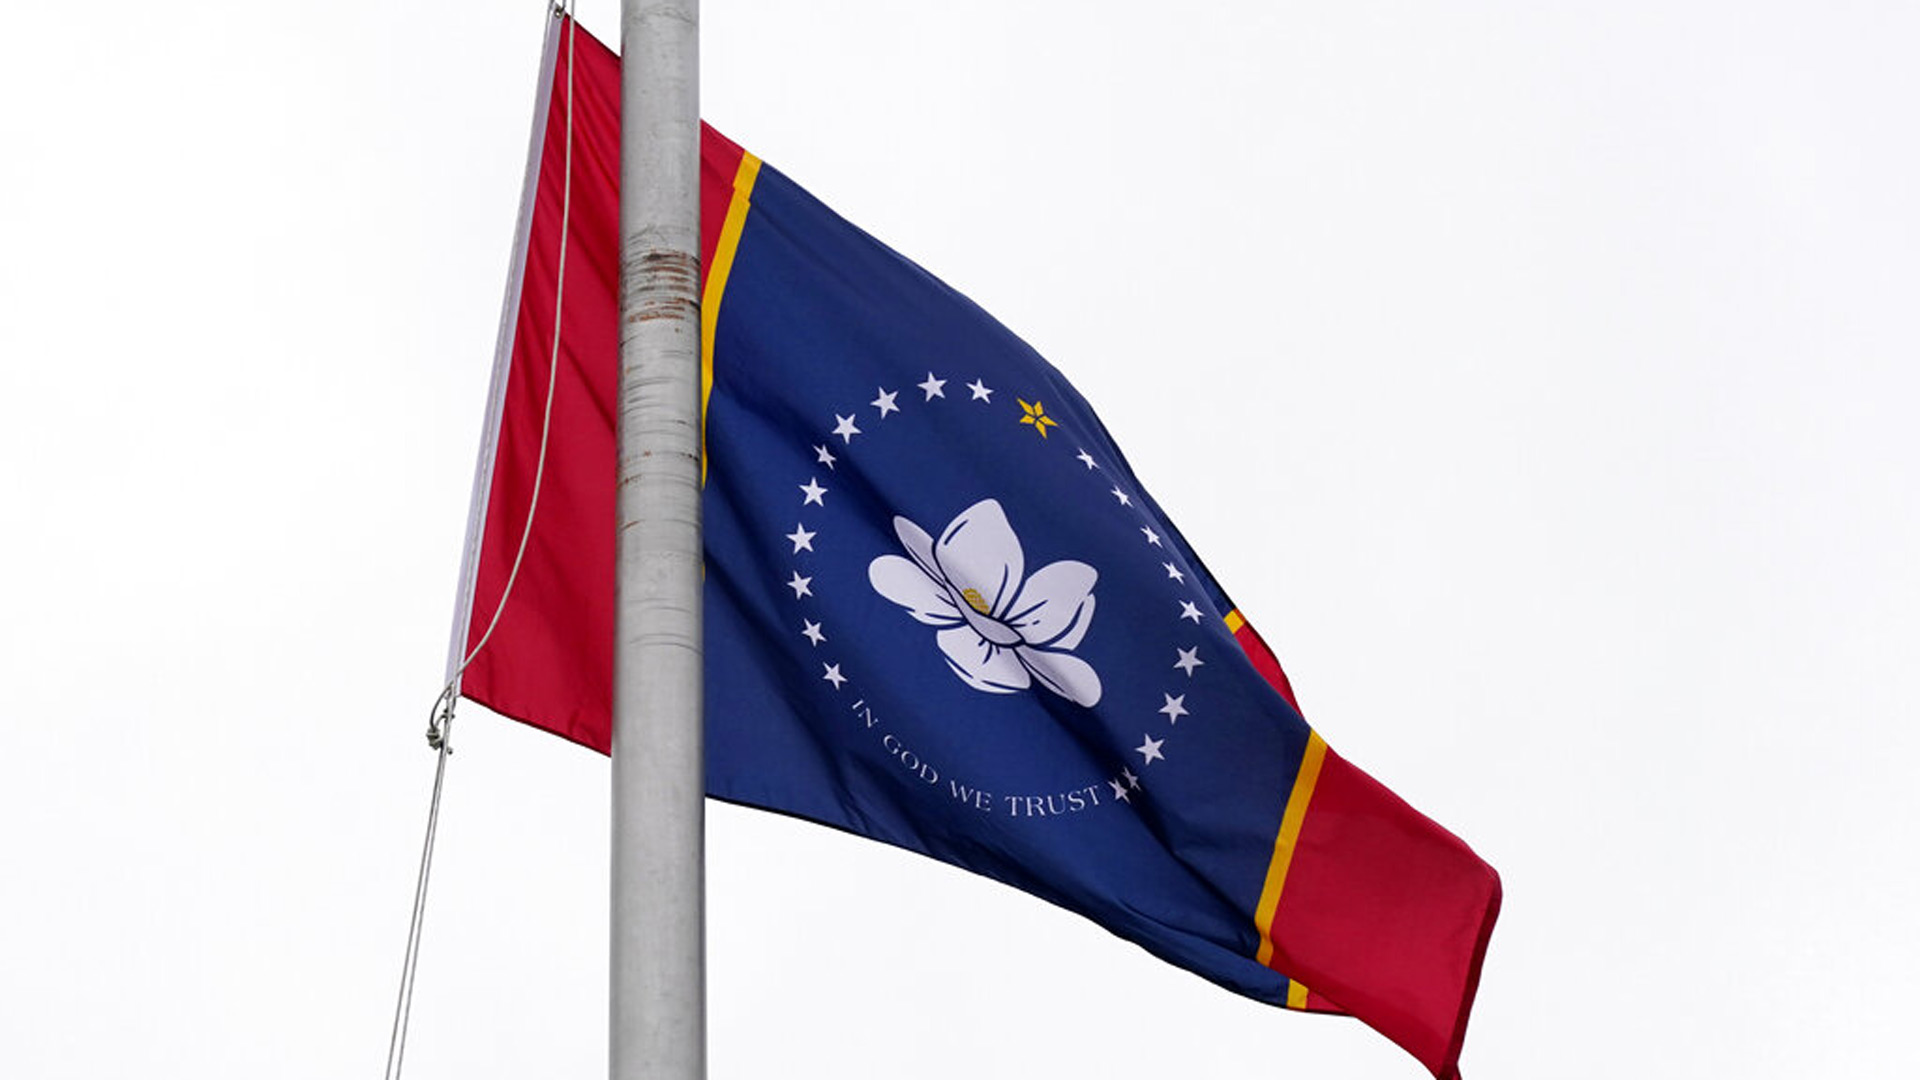 One of five final designs for the new Mississippi state flag flutters in the breeze, outside the Old Capitol Museum in Jackson, Miss., Aug. 25, 2020, in Jackson, Miss. In late June, Mississippi legislators voted to retire the last state flag to include the Confederate battle emblem, which is broadly condemned as racist. All five were flown outside the museum for viewing. The Mississippi State Flag Commission narrowed their choices to two flags, of which this is one. They will reconvene in September to make their final choice. (AP Photo/Rogelio V. Solis)